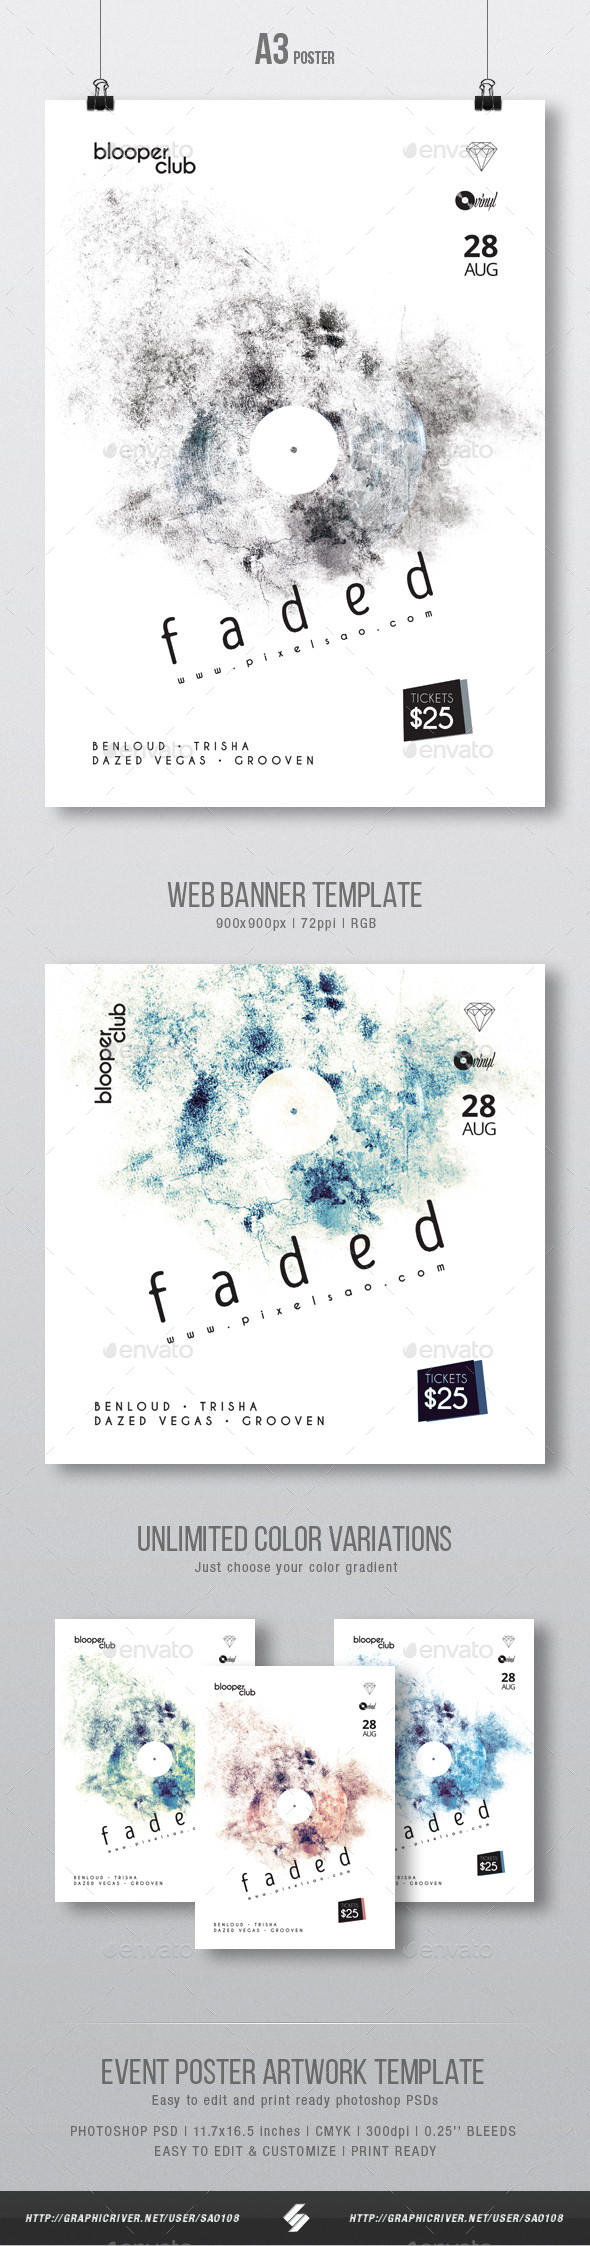 GraphicRiver Faded Minimal Party Flyer Poster Artwork Template A3 20519182